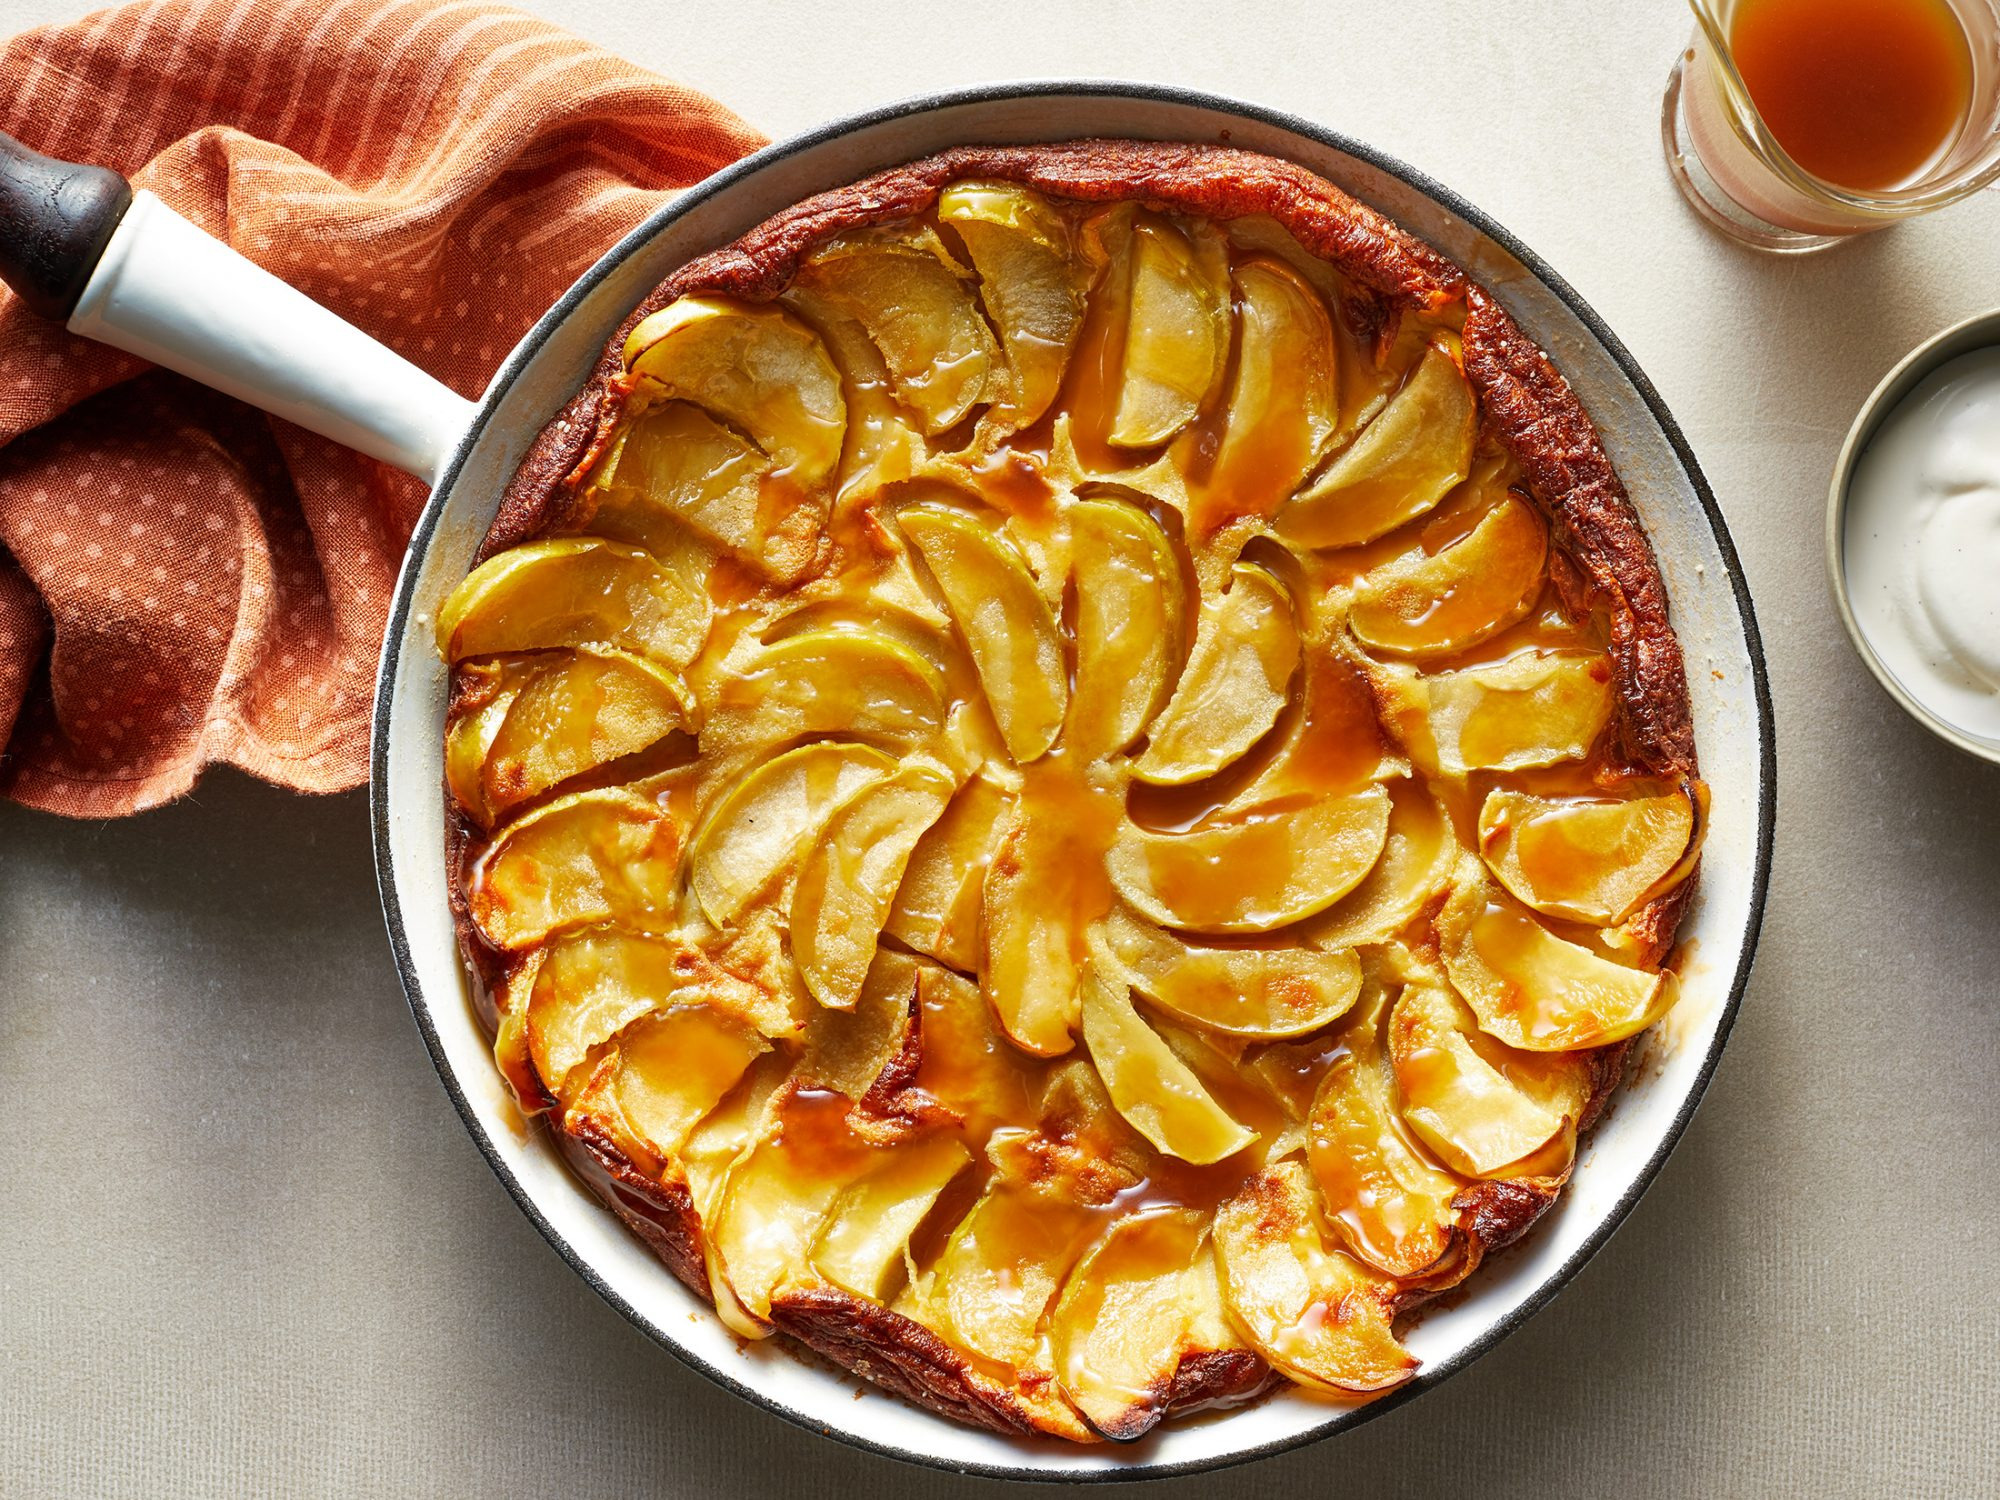 Maple-Caramel Apple Clafoutis image